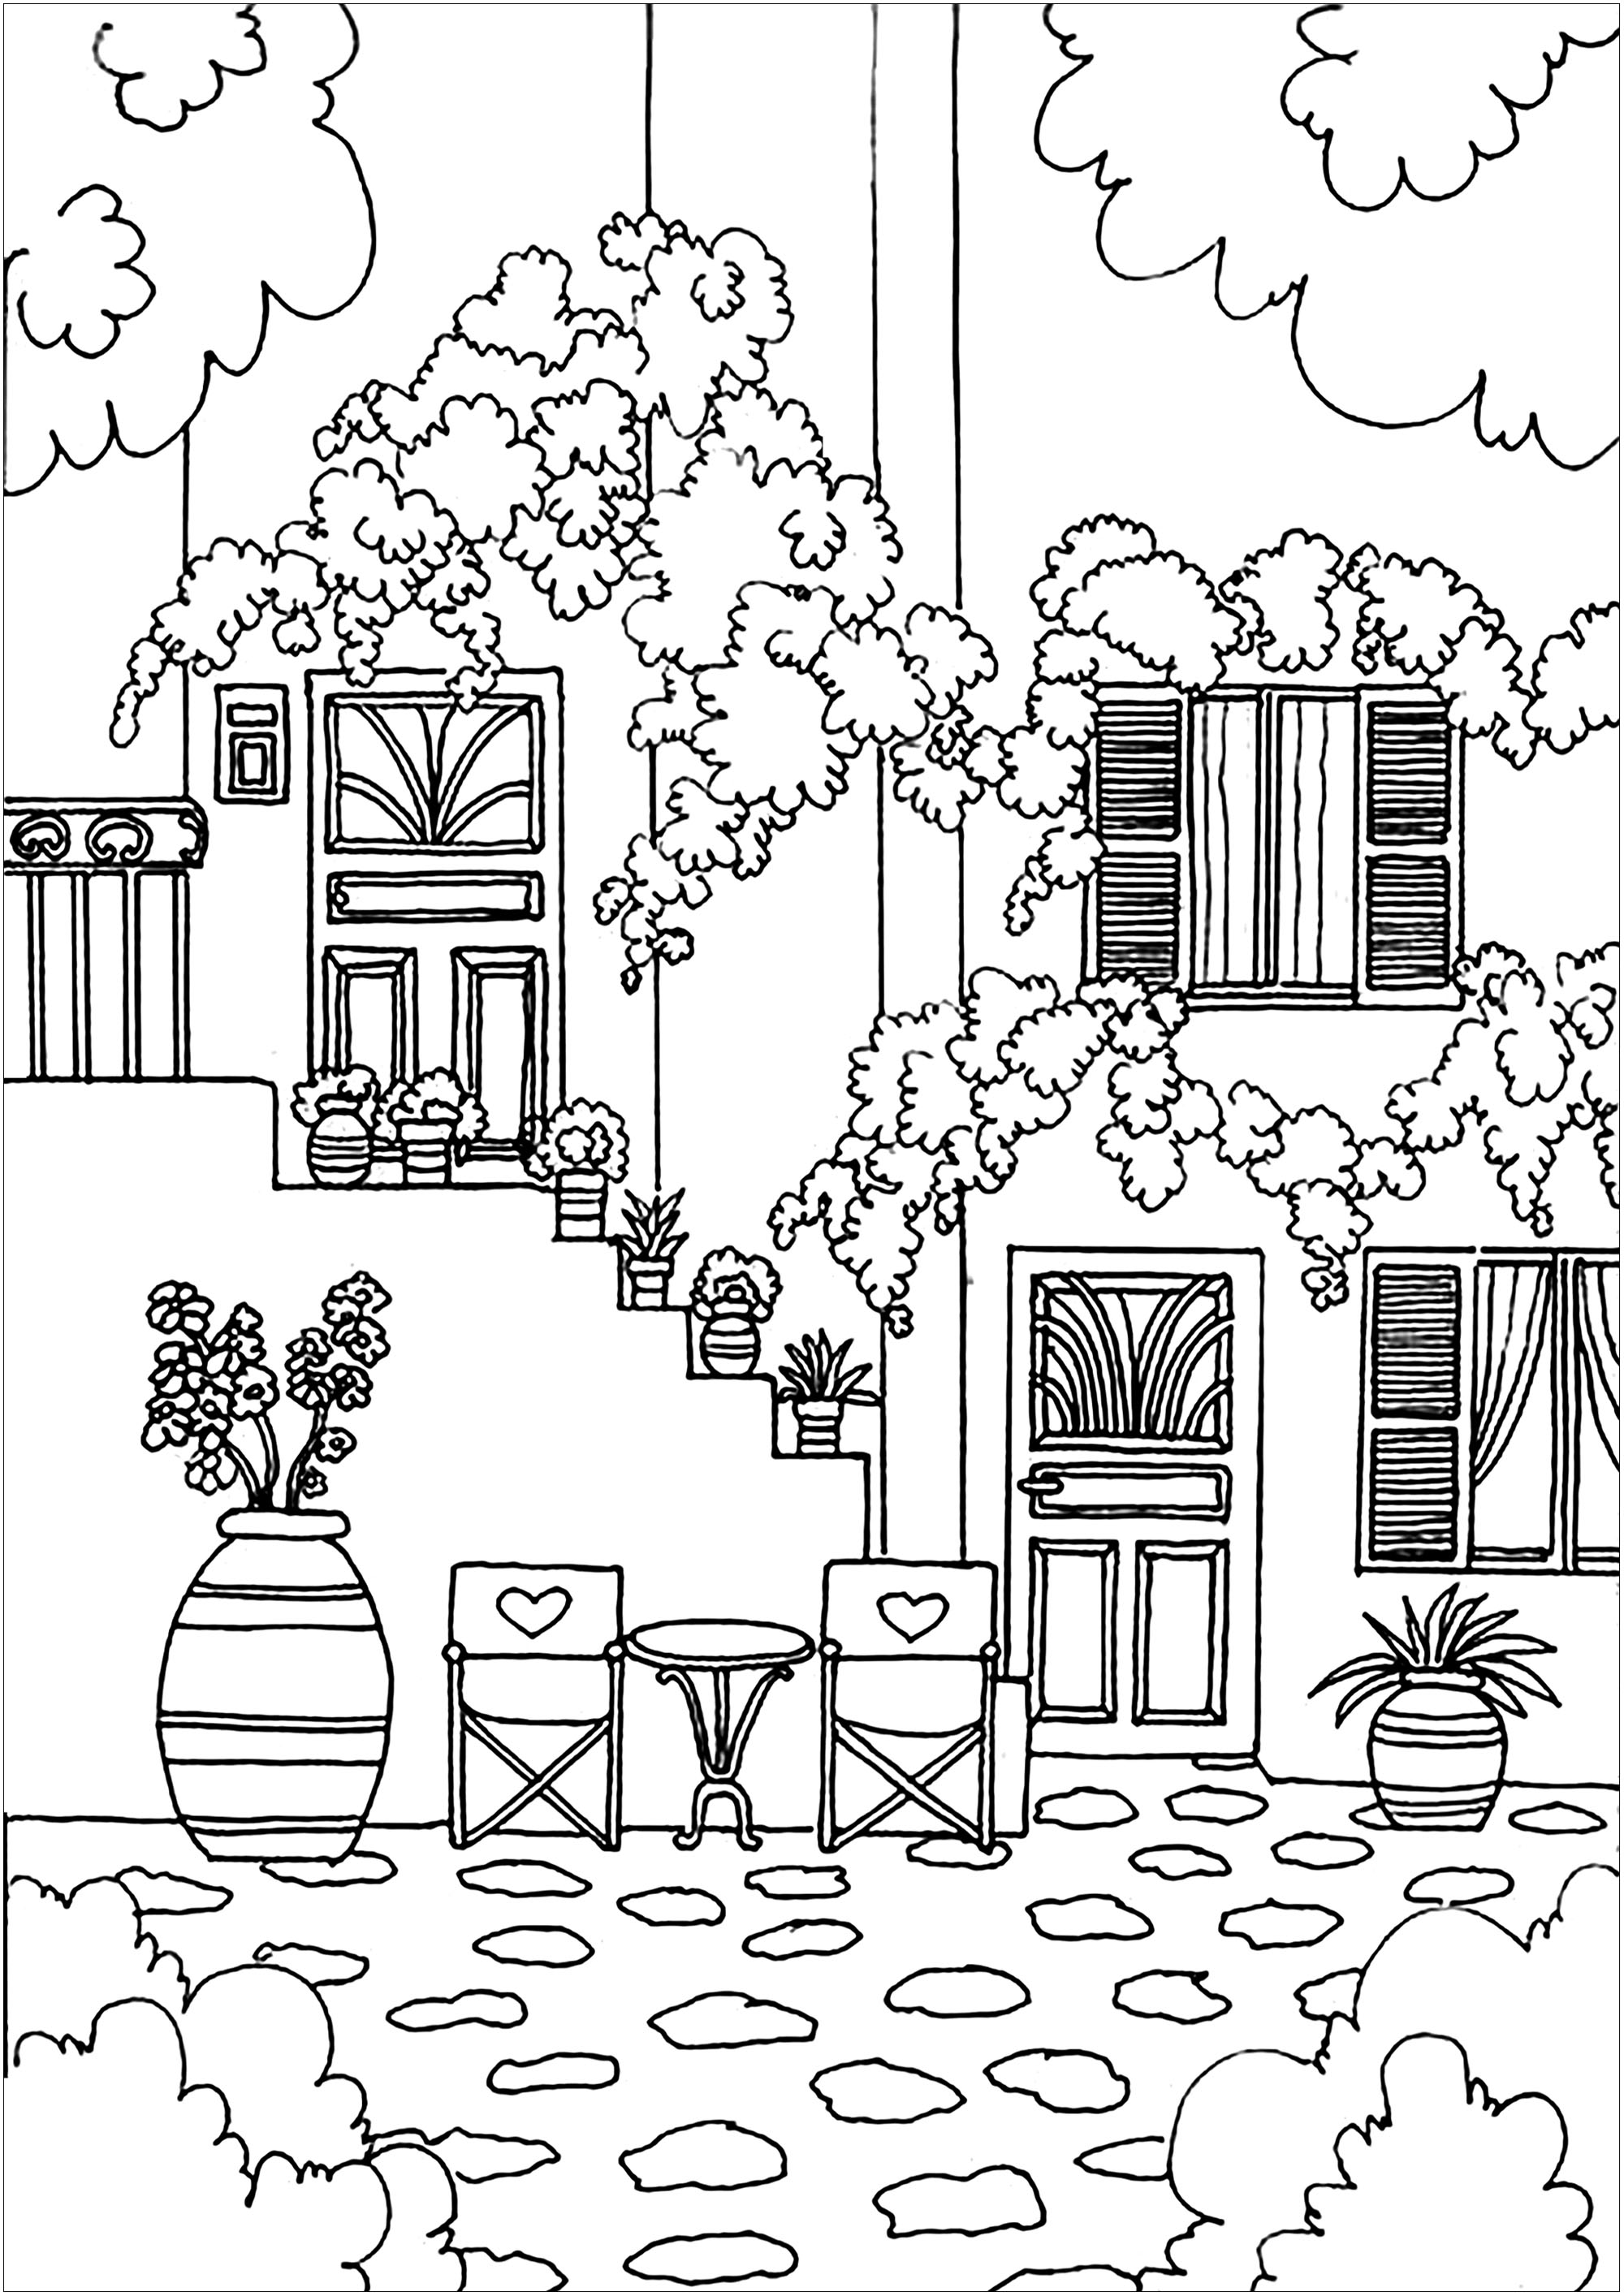 home coloring image free printable house coloring pages for kids home coloring image